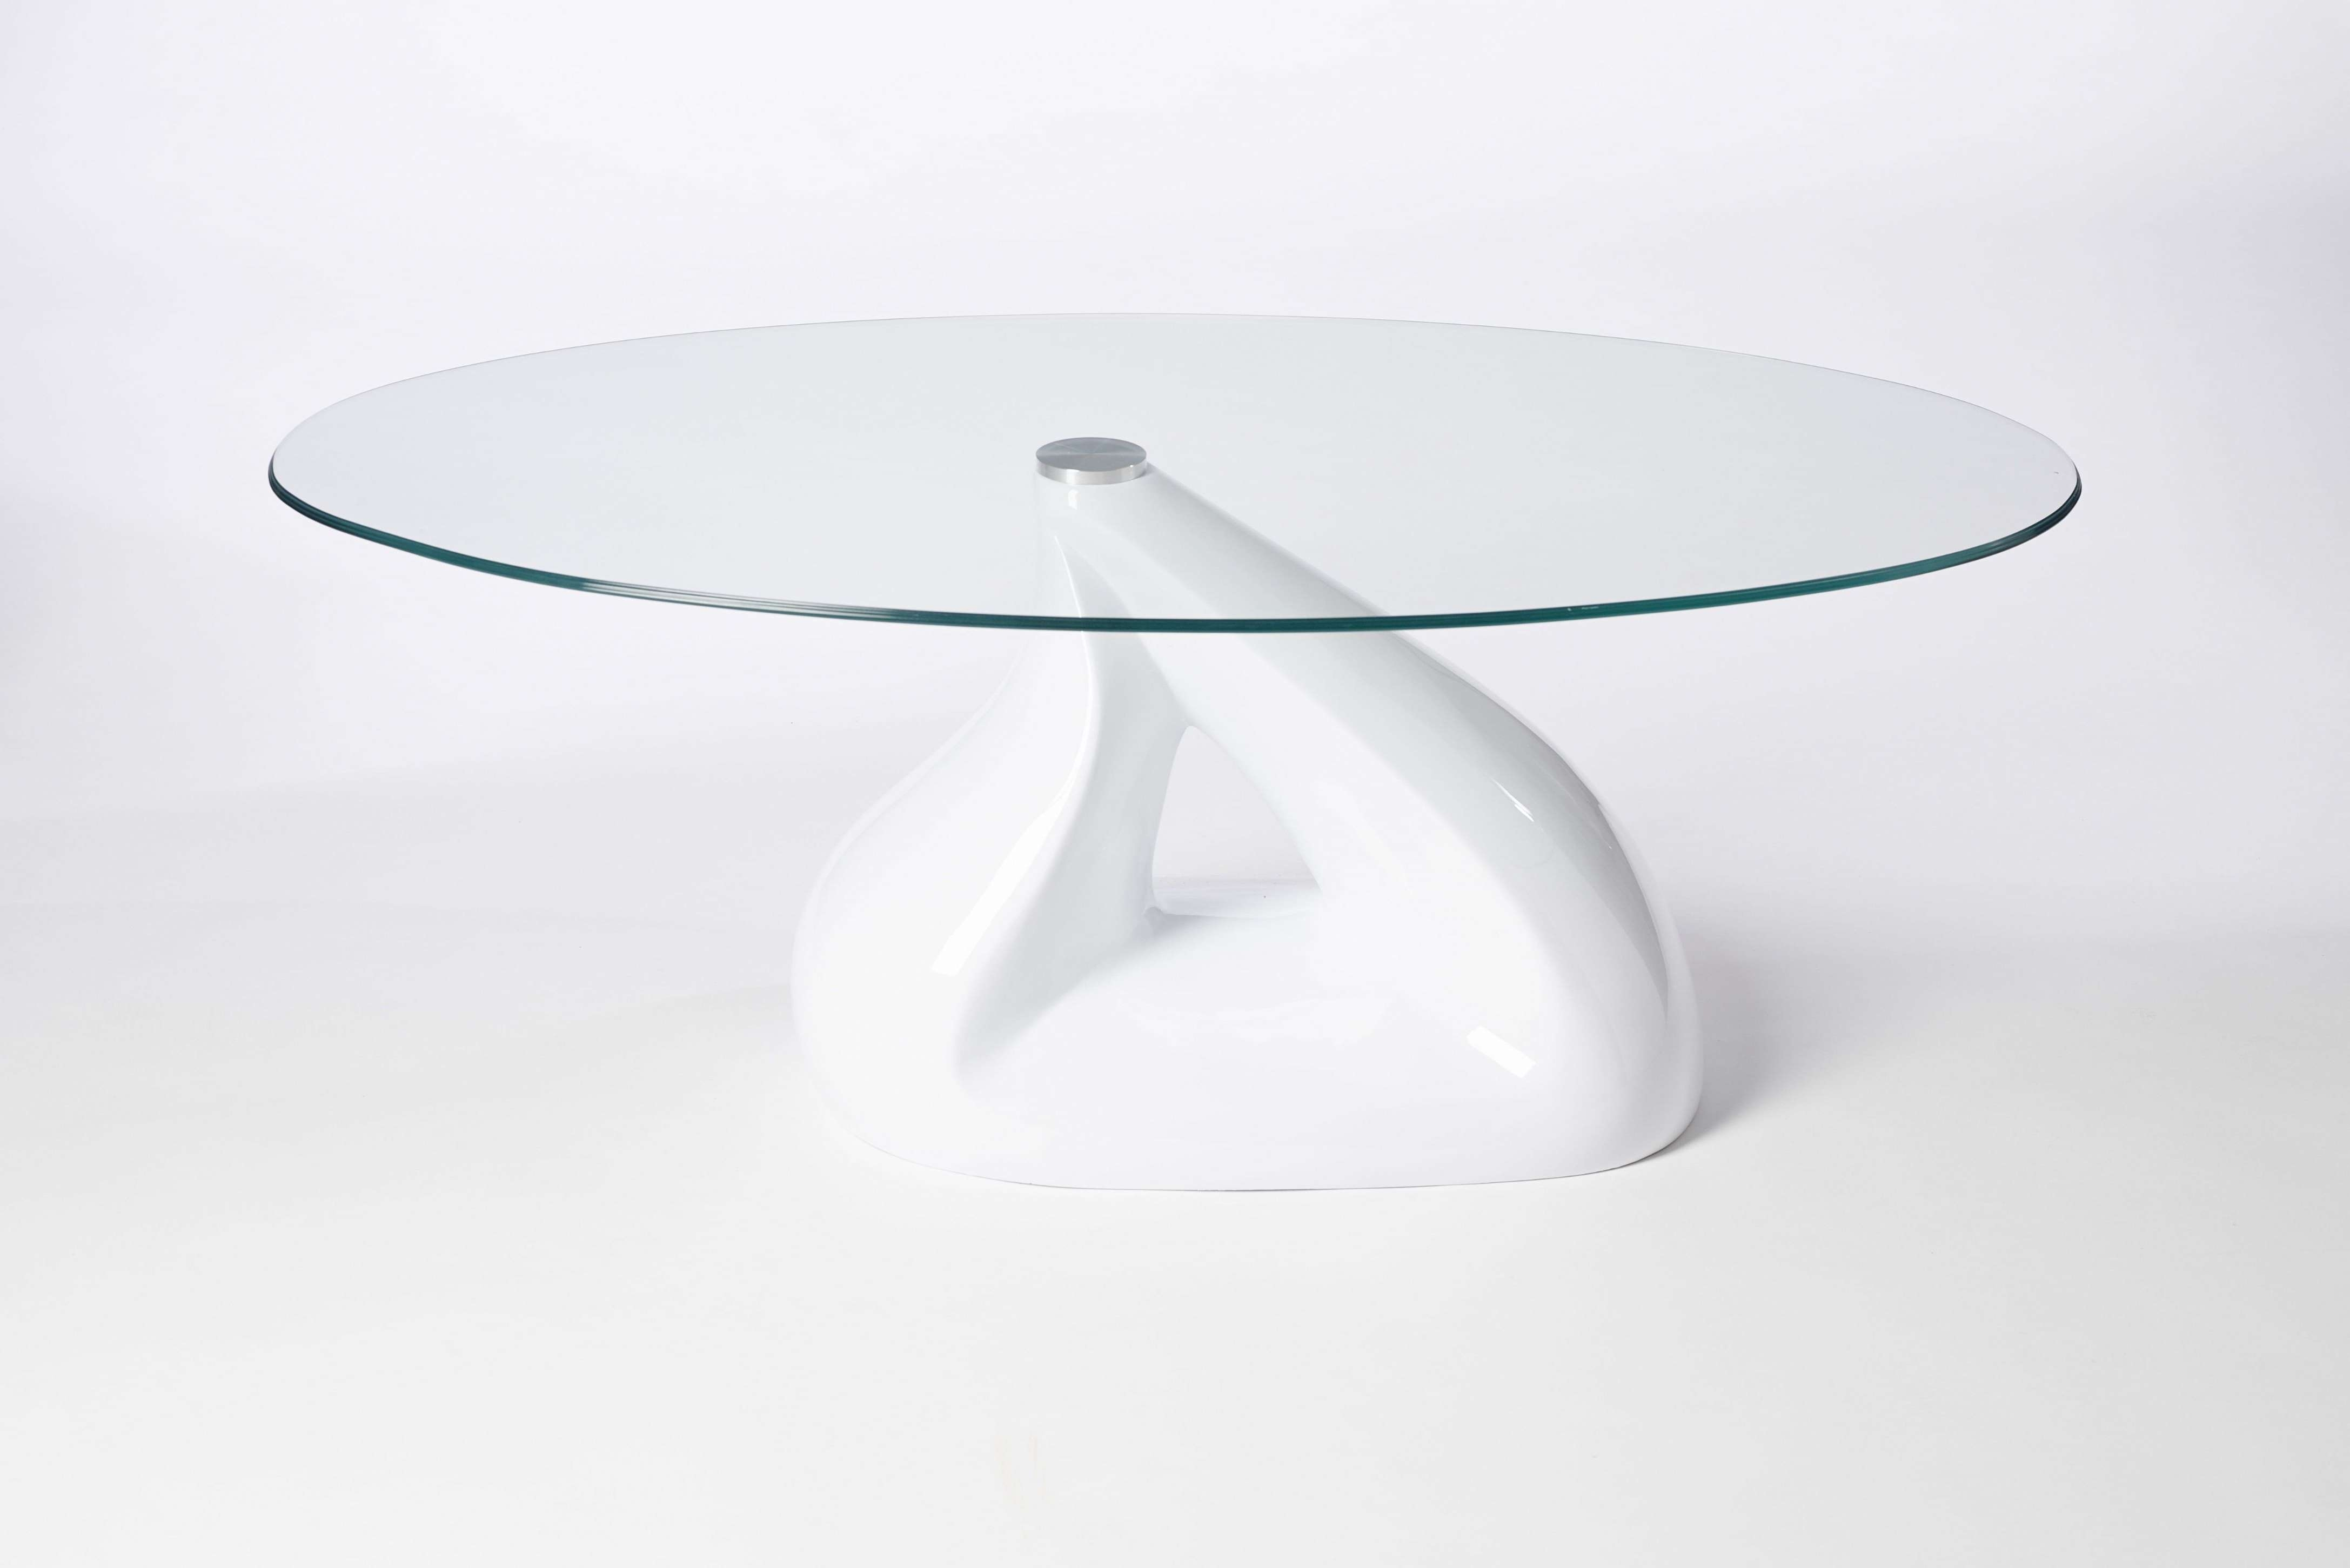 Decorations : Living Room Lovely Acrylic Clear Glass Oval Coffee For Best And Newest White Oval Coffee Tables (View 6 of 20)